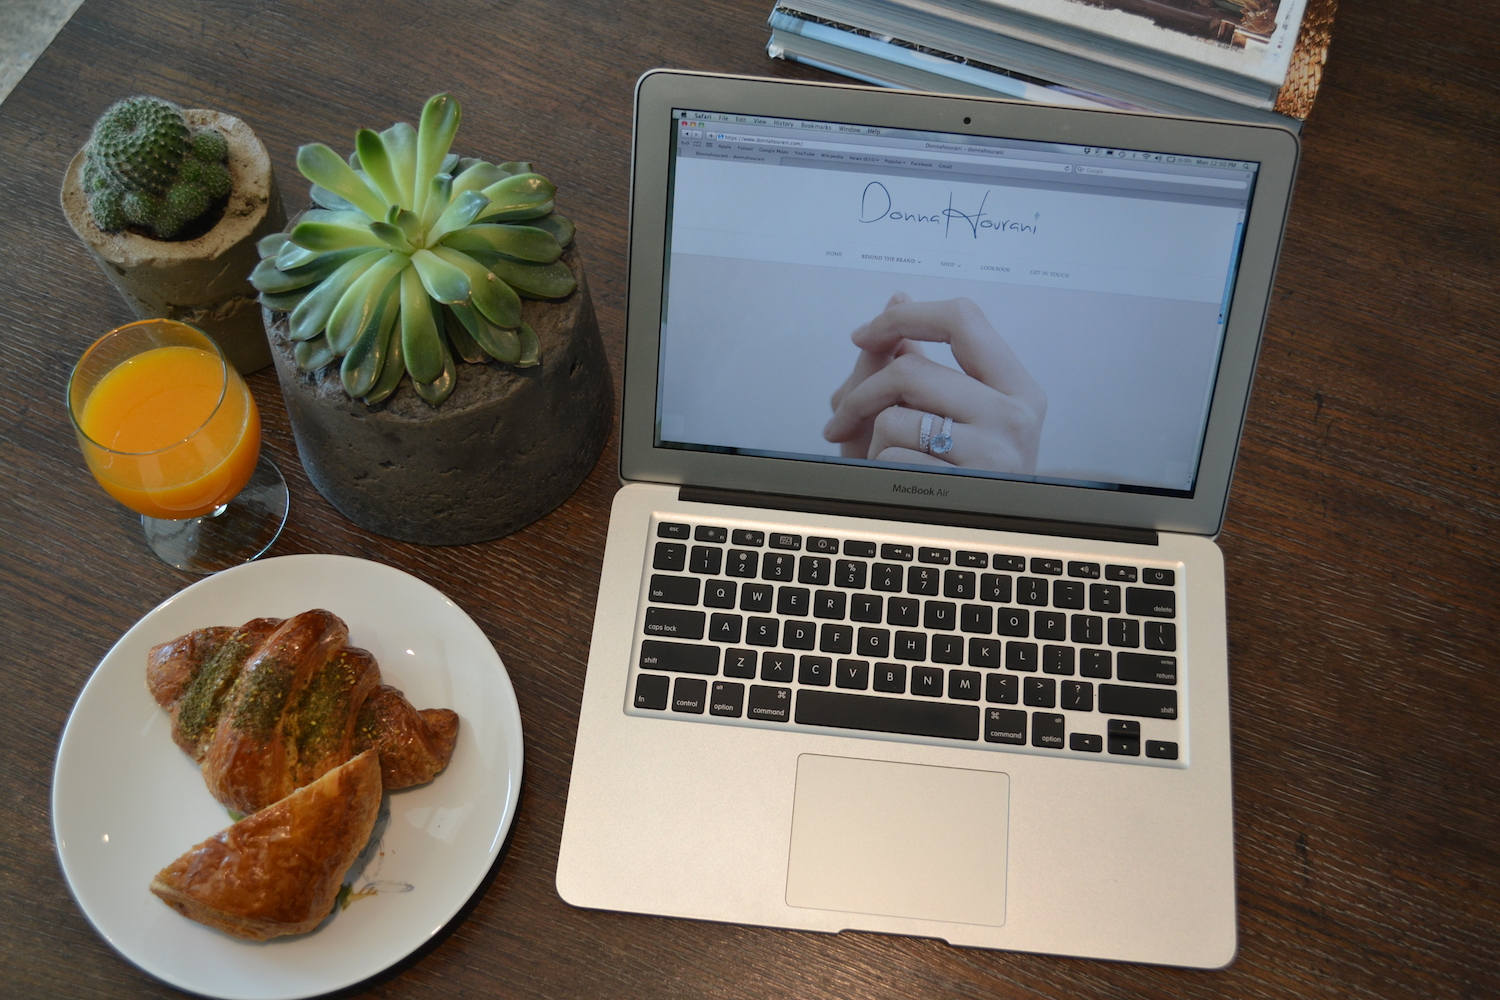 Donna Hourani In between breakfast and updating the site